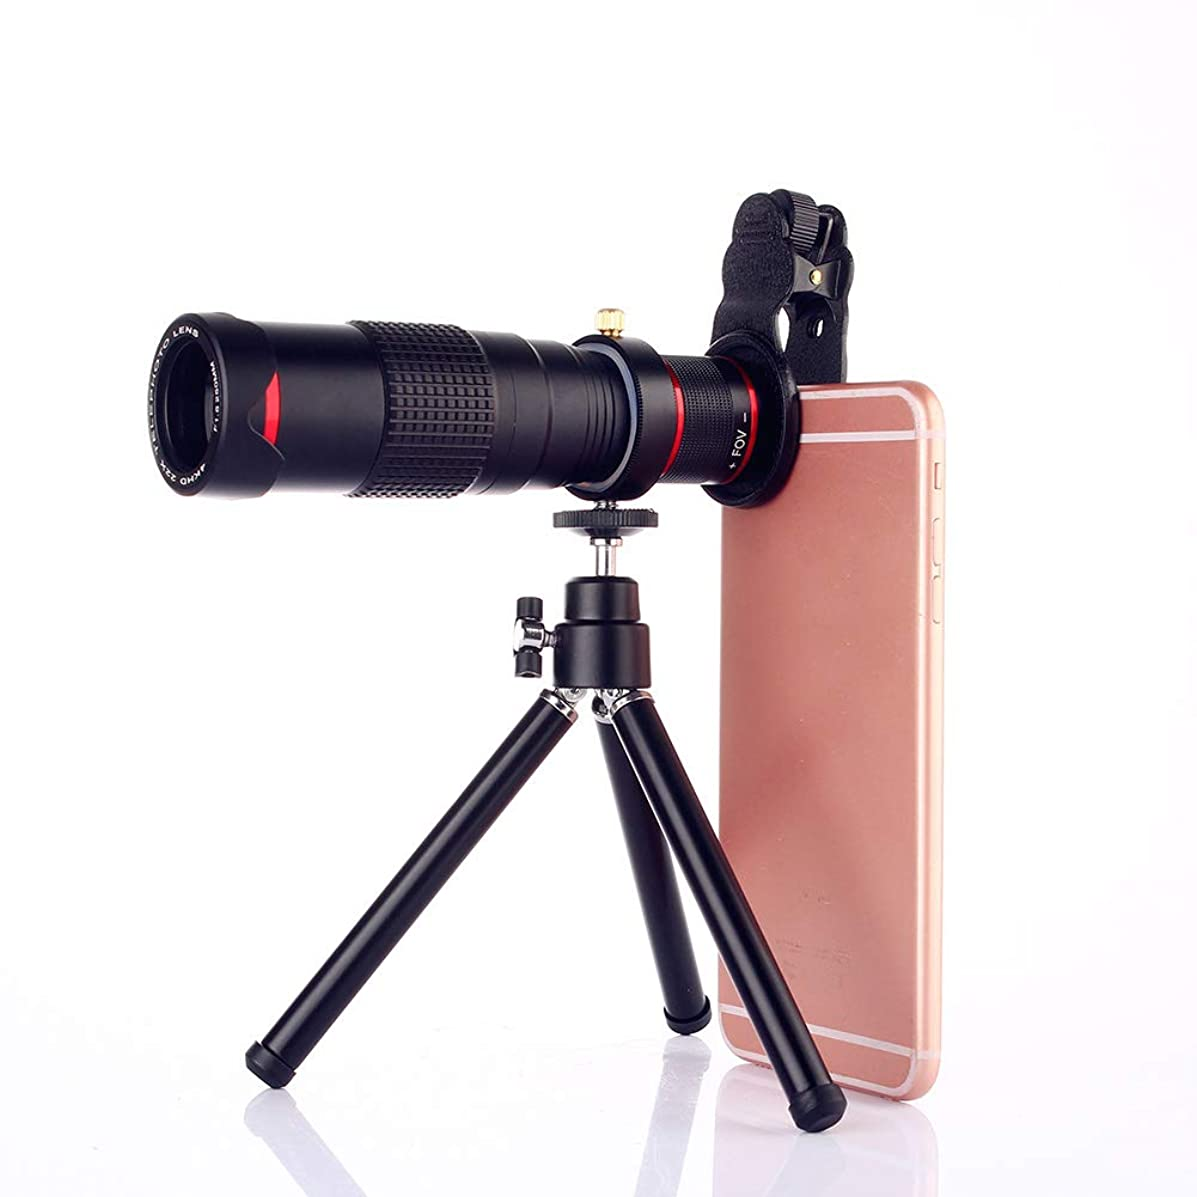 Aingol Cell Phone Lens 22x Telephoto Lens Super Wide Angle Lens Macro Lens 3 in 1 Phone Camera Lens Kit with Universal Clip and Mini Flexible Tripod for iPhone Most Smartphones